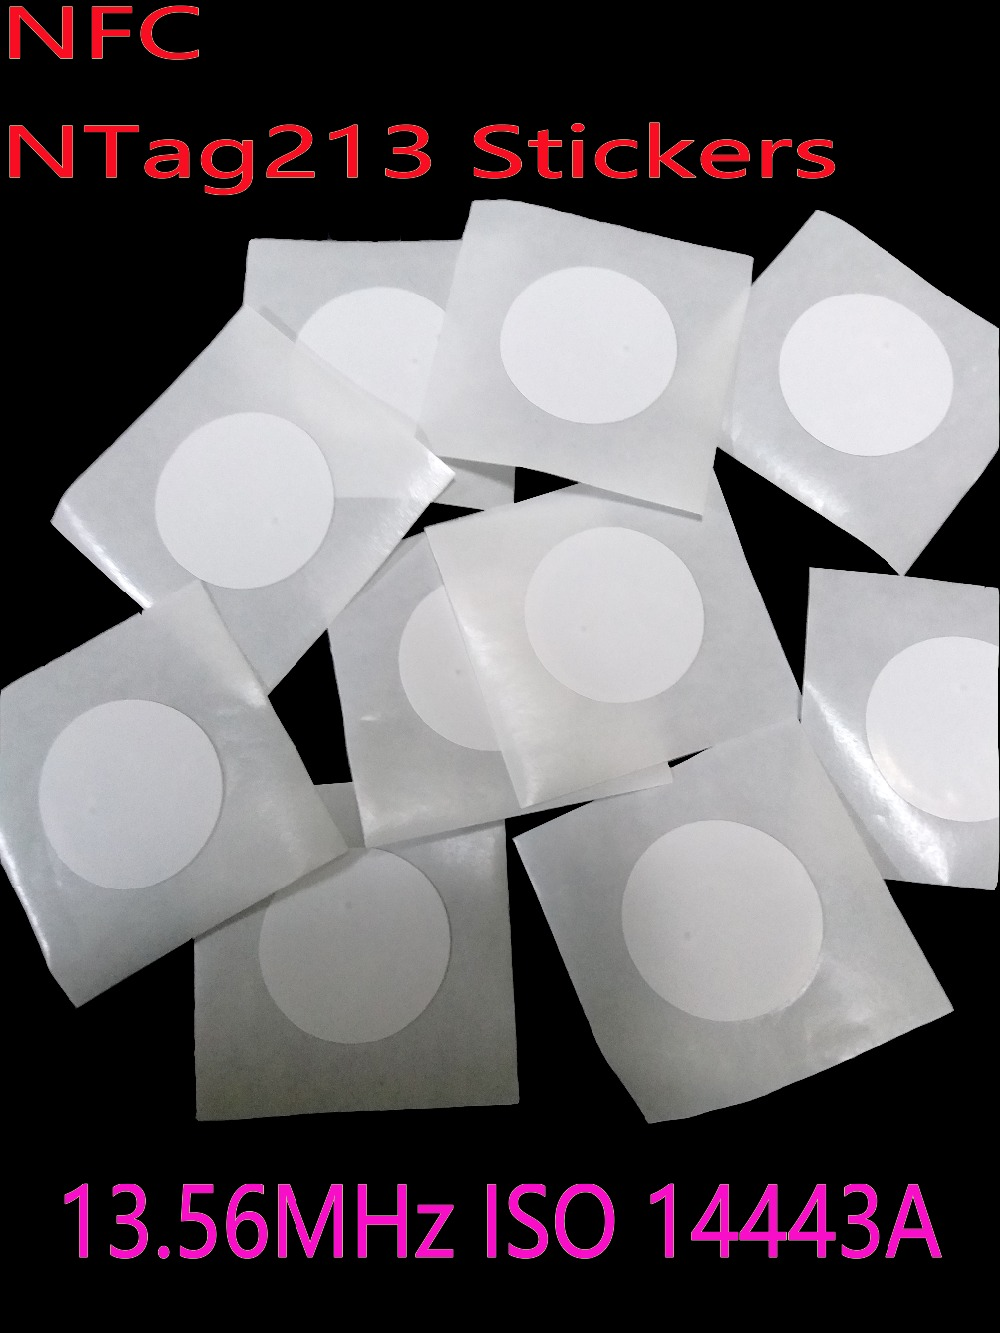 10pcs/Lot NTAG 213 NFC Tags Rewritable Ntag213 NFC Tag Sticker 13.56MHz ISO14443A 25mm All NFC Phone Available Adhesive Labels nd2 400 variable nd filter for 62mm lens camera black transparent